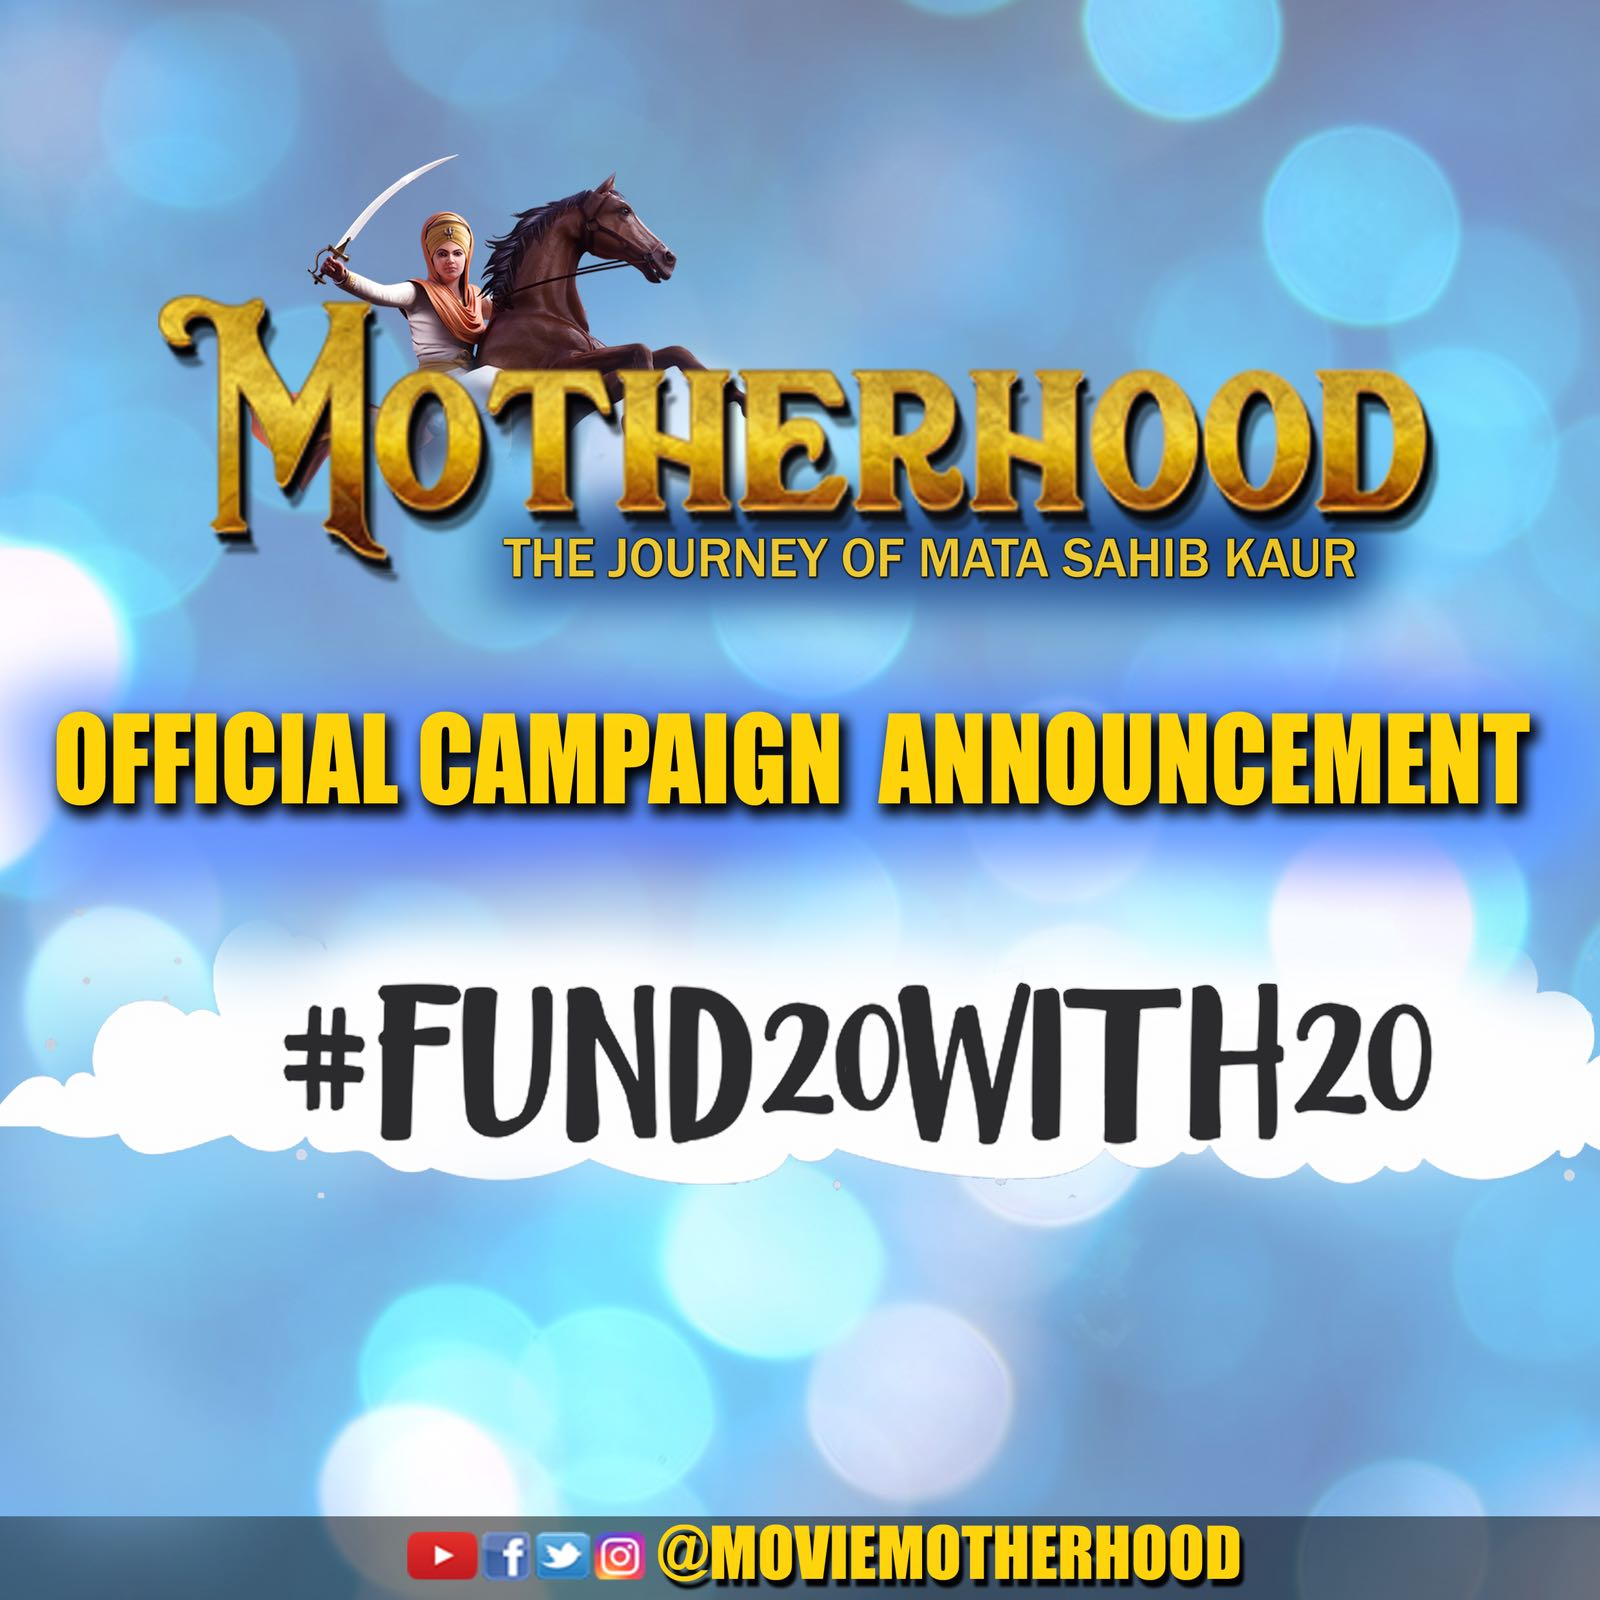 Hashtag #Fund20With20